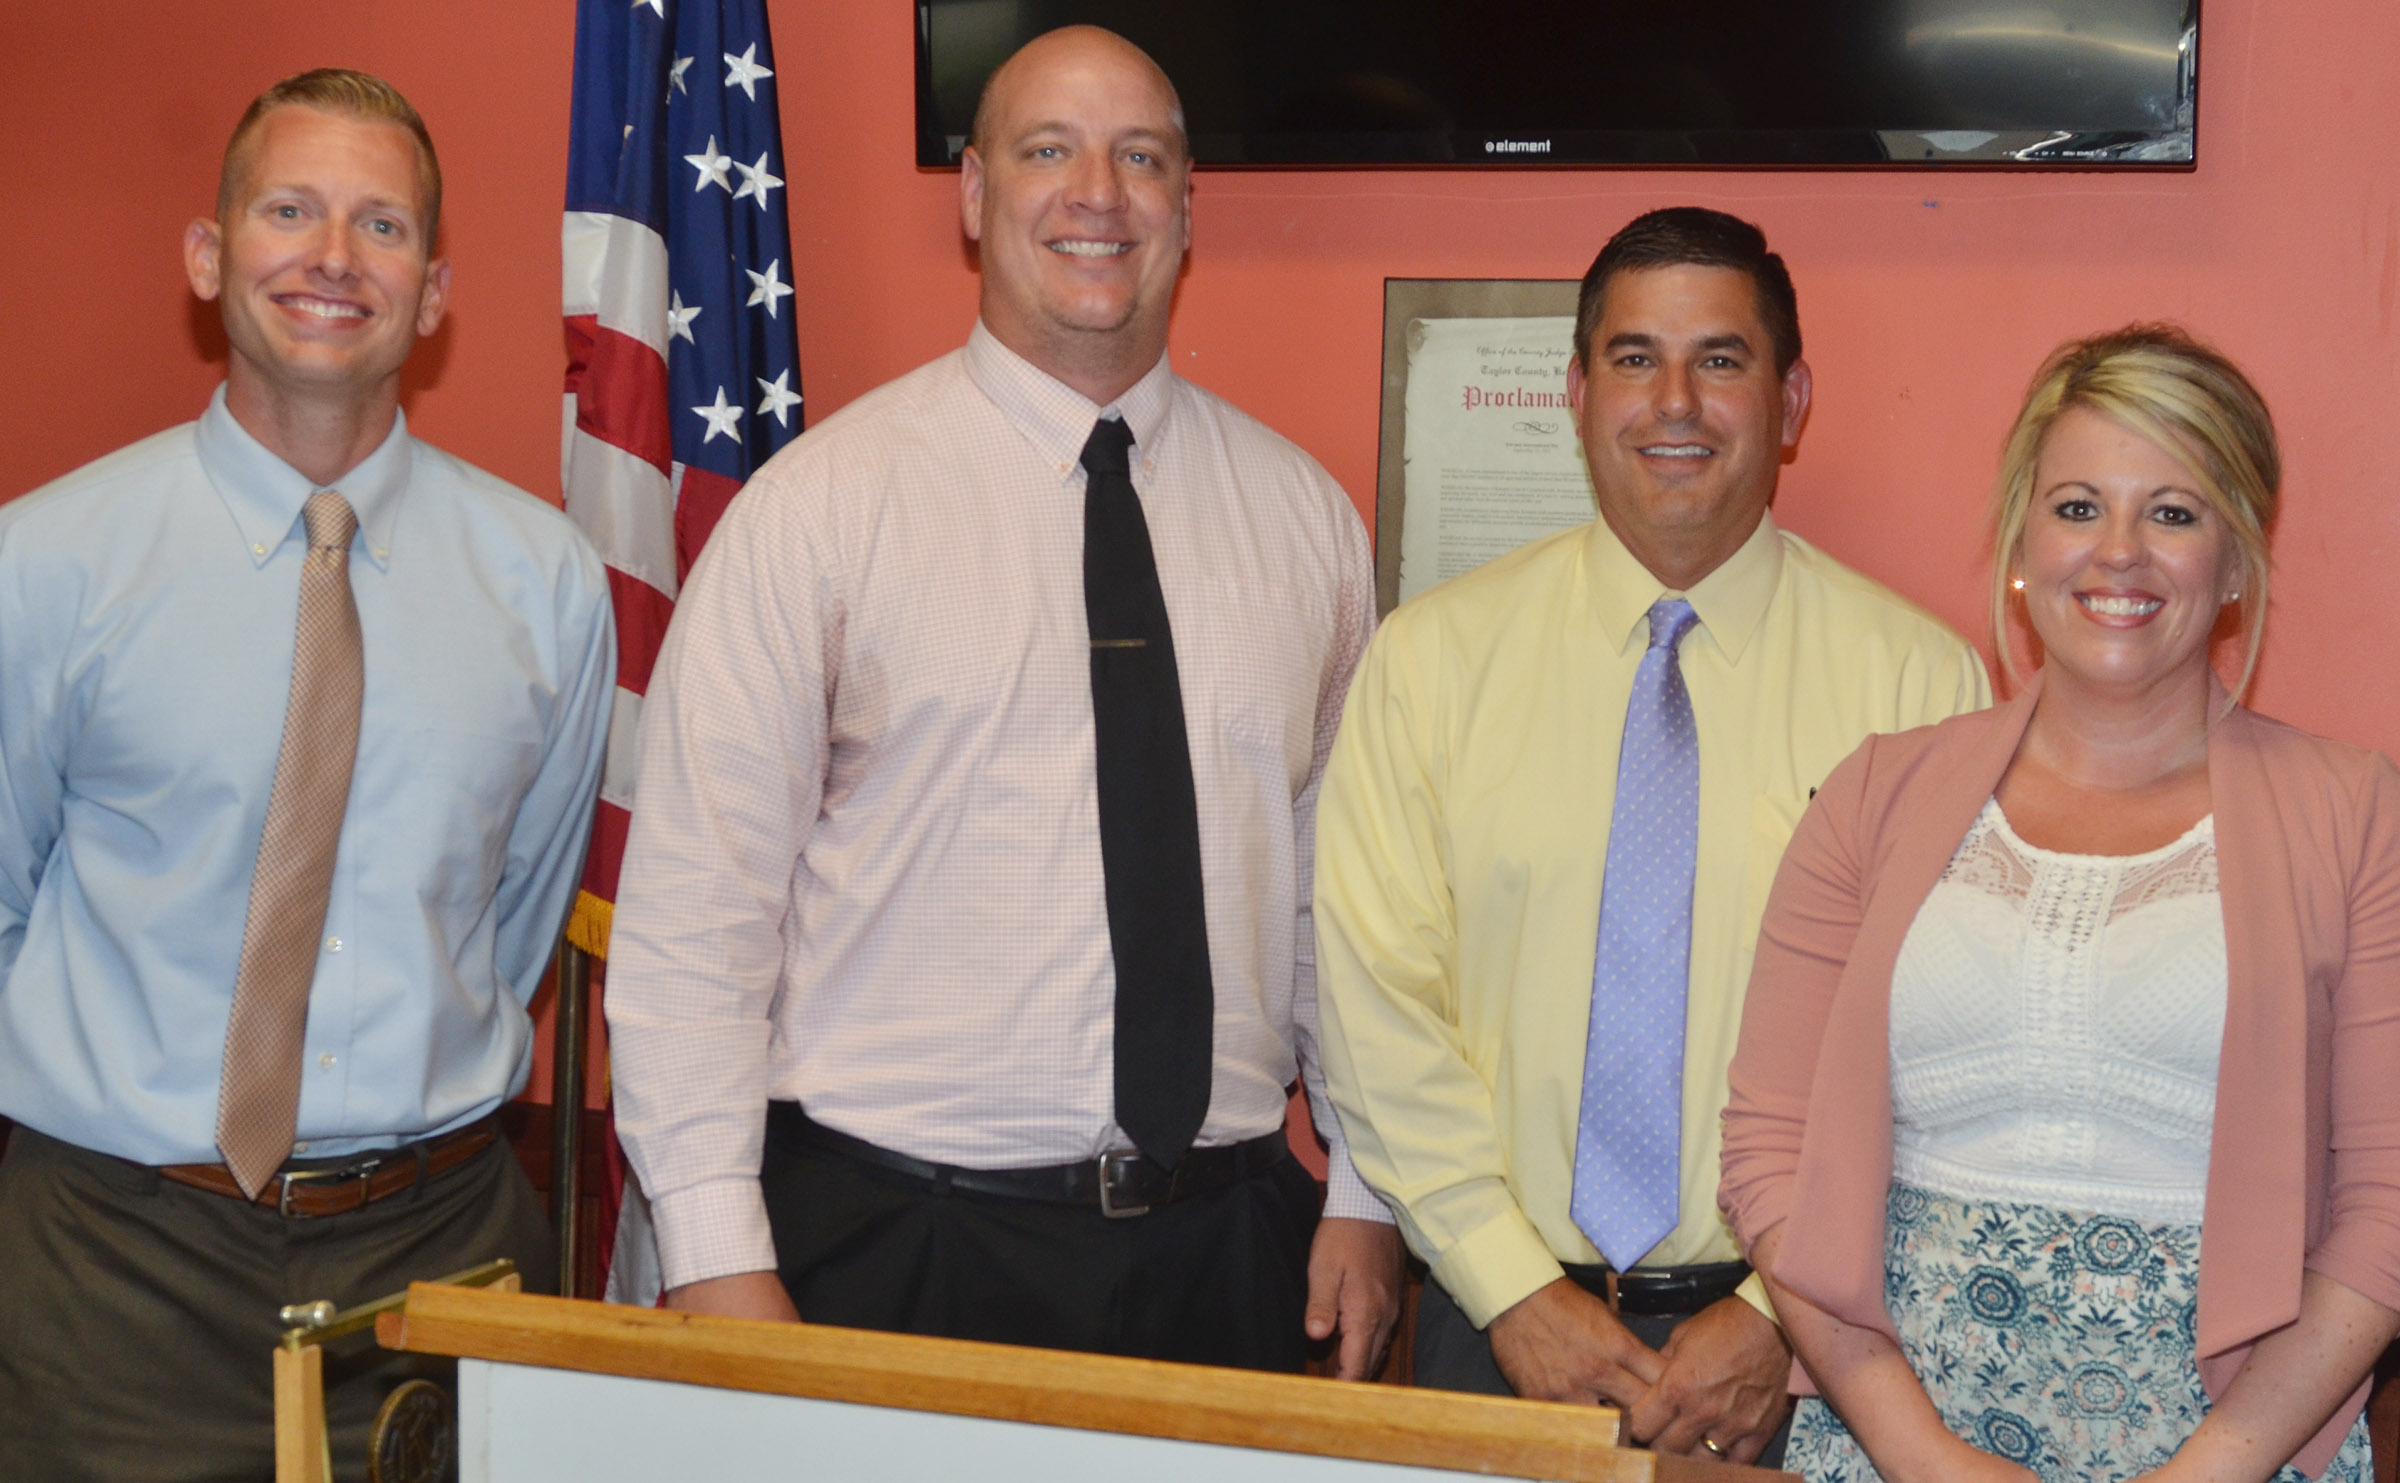 Campbellsville Independent Schools' has placed new leaders at all of its schools this year. From left are CMS Principal Zach Lewis, CHS Principal David Petett, Superintendent Kirby Smith and CES Principal Elisha Rhodes.